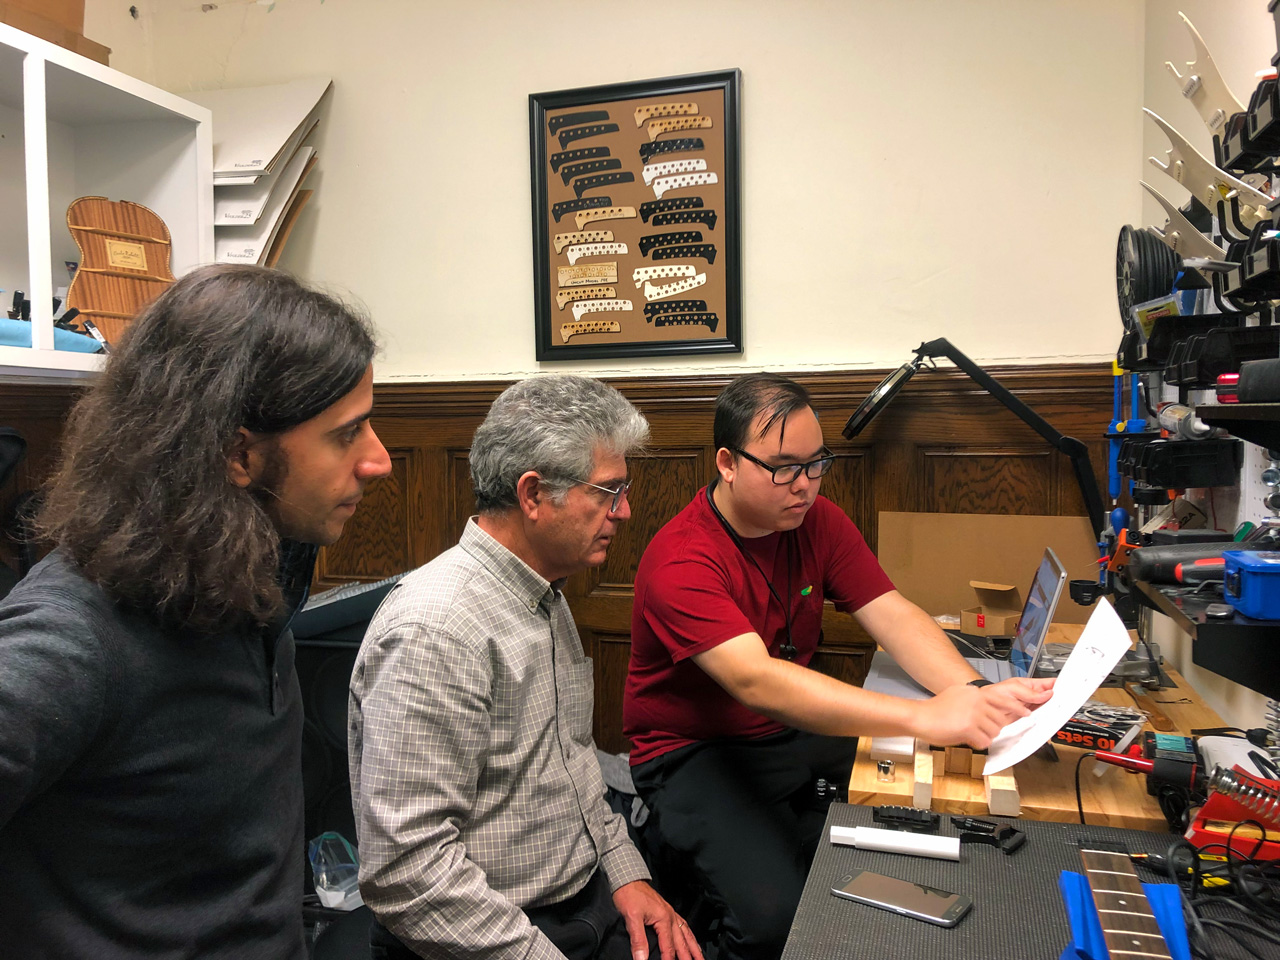 Instrument maker and EGIL project sponsor Ned Steinberger (center) working with a graduate student (right) to solve a vibrato system problem (2019)